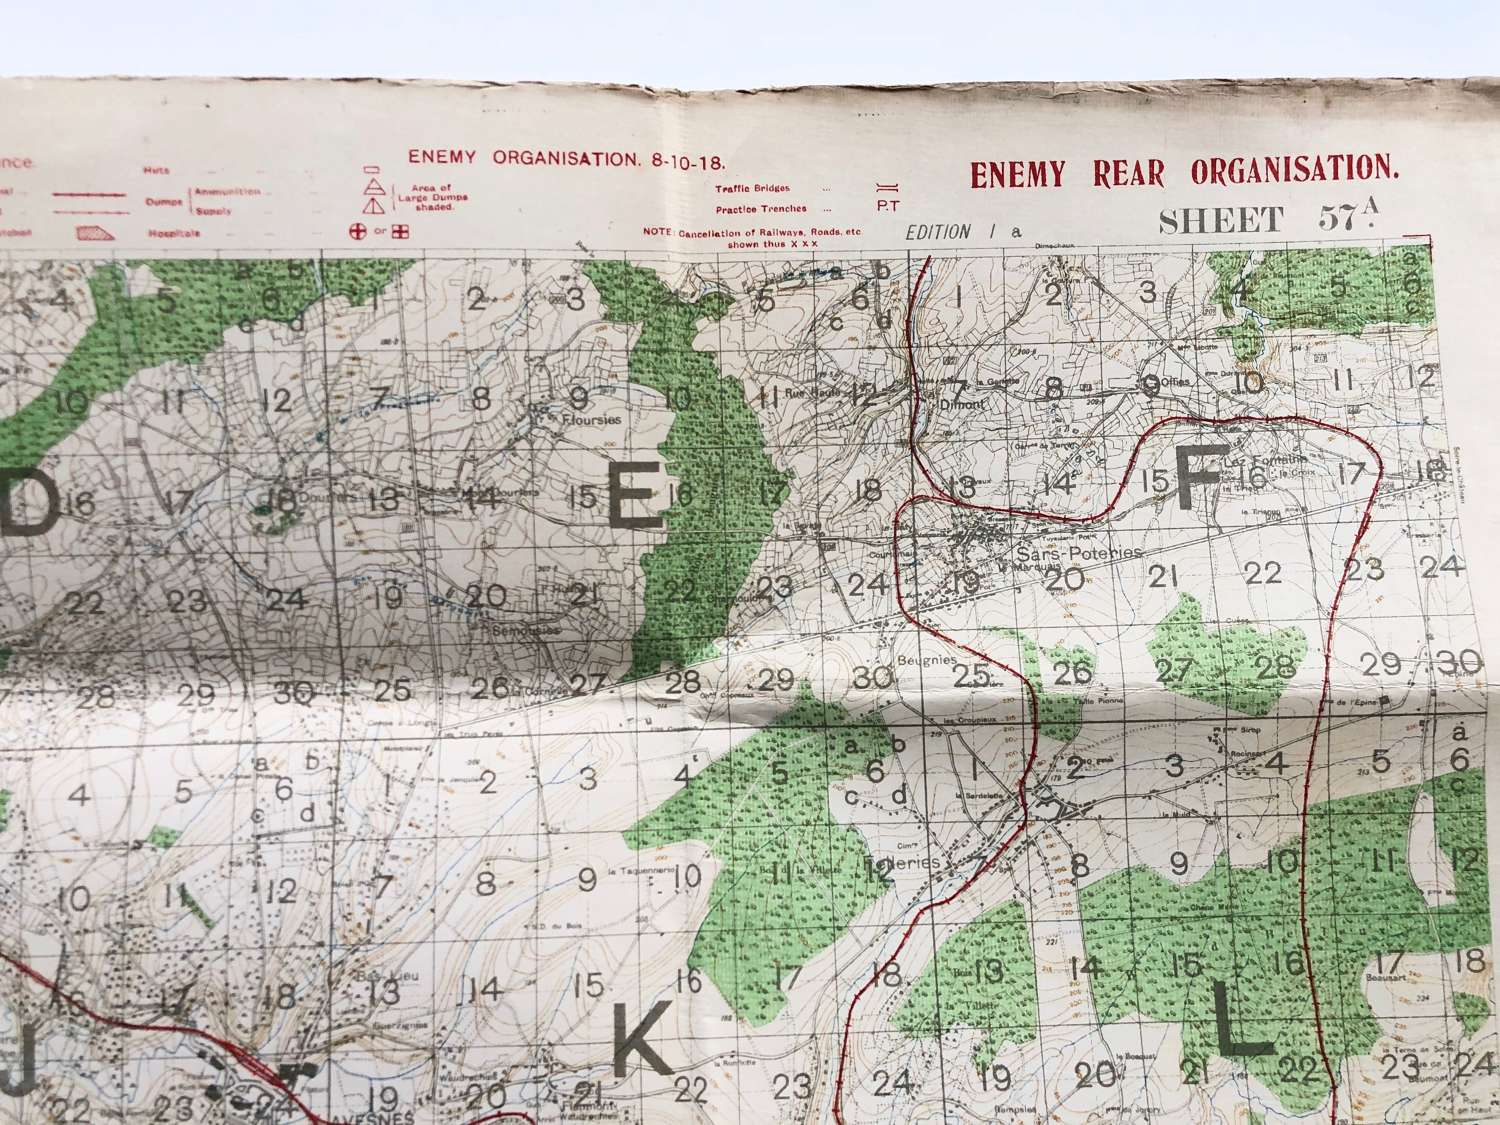 WW1 British Army October 1918 Trench Map. Sheet 57A